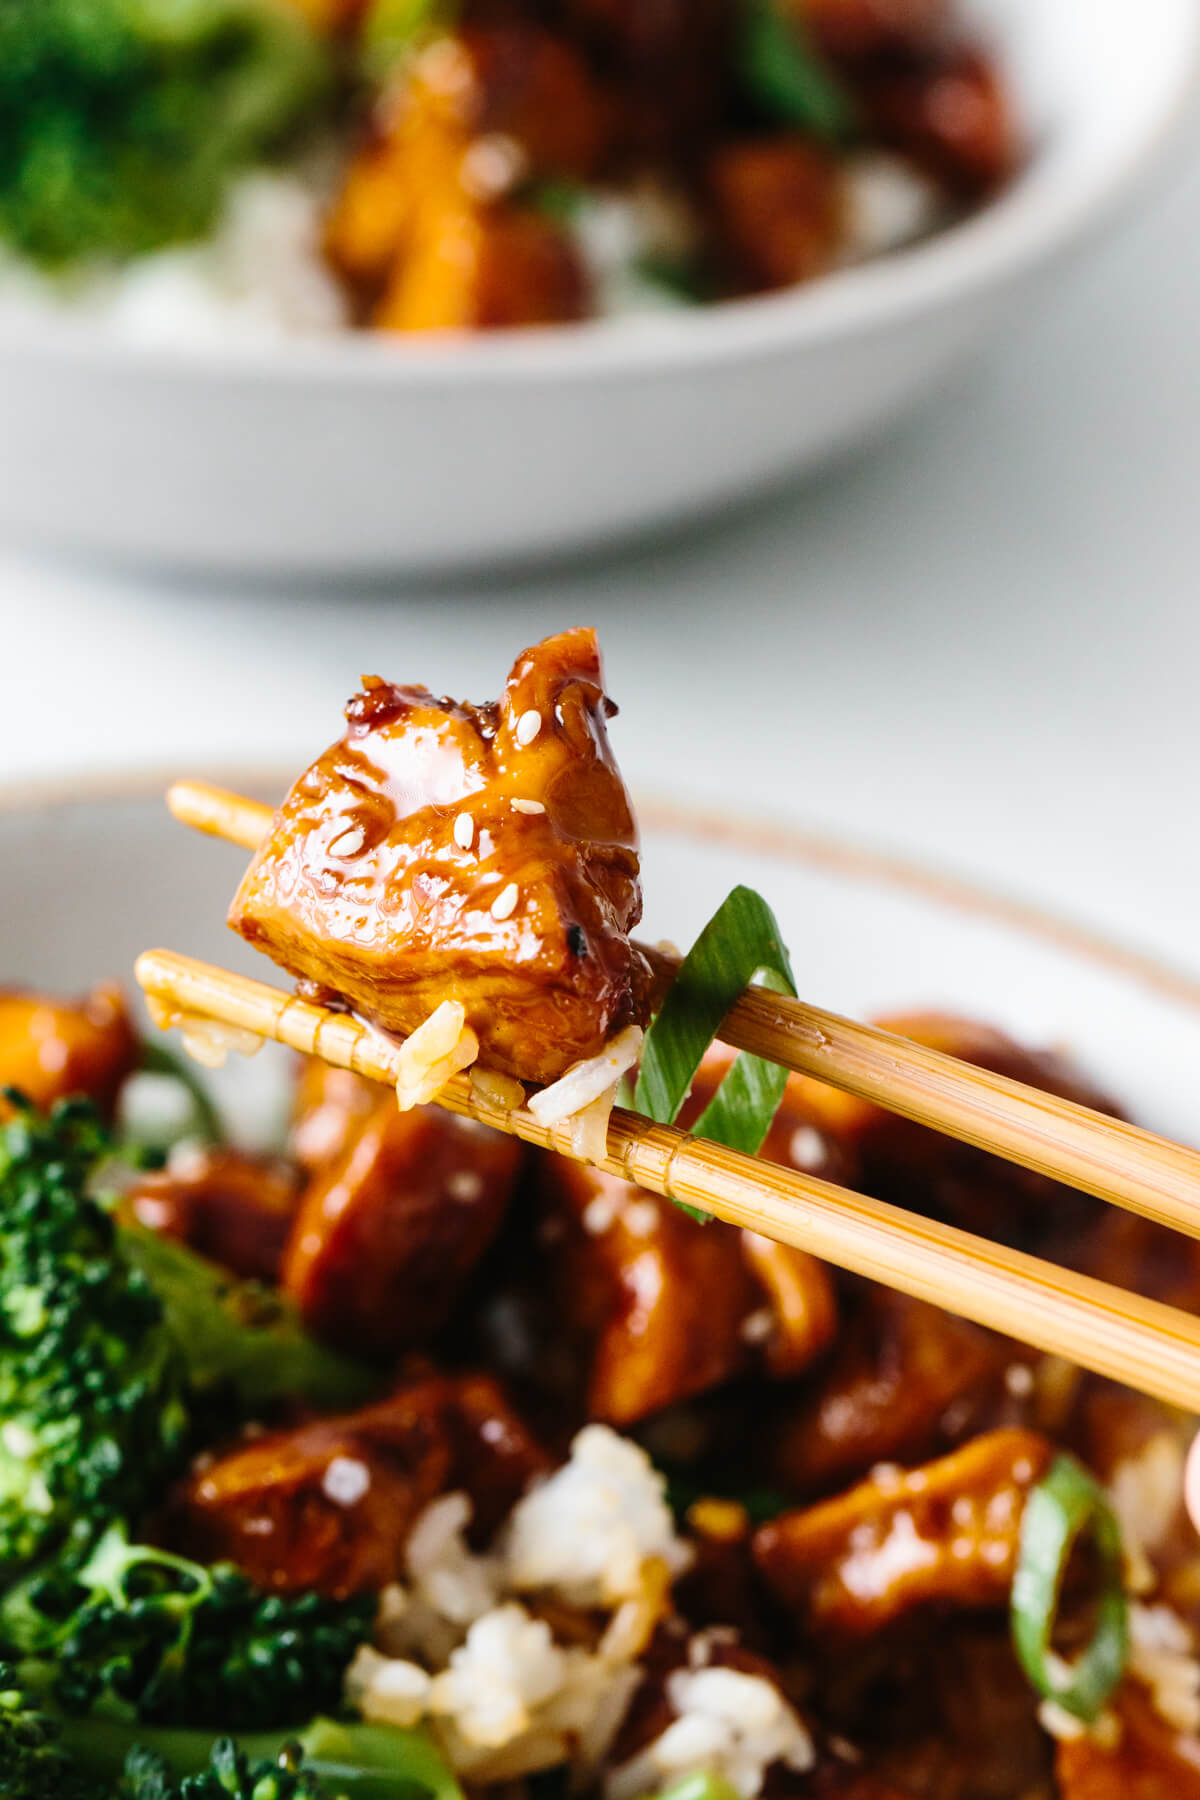 A piece of teriyaki chicken picked up with chopsticks.